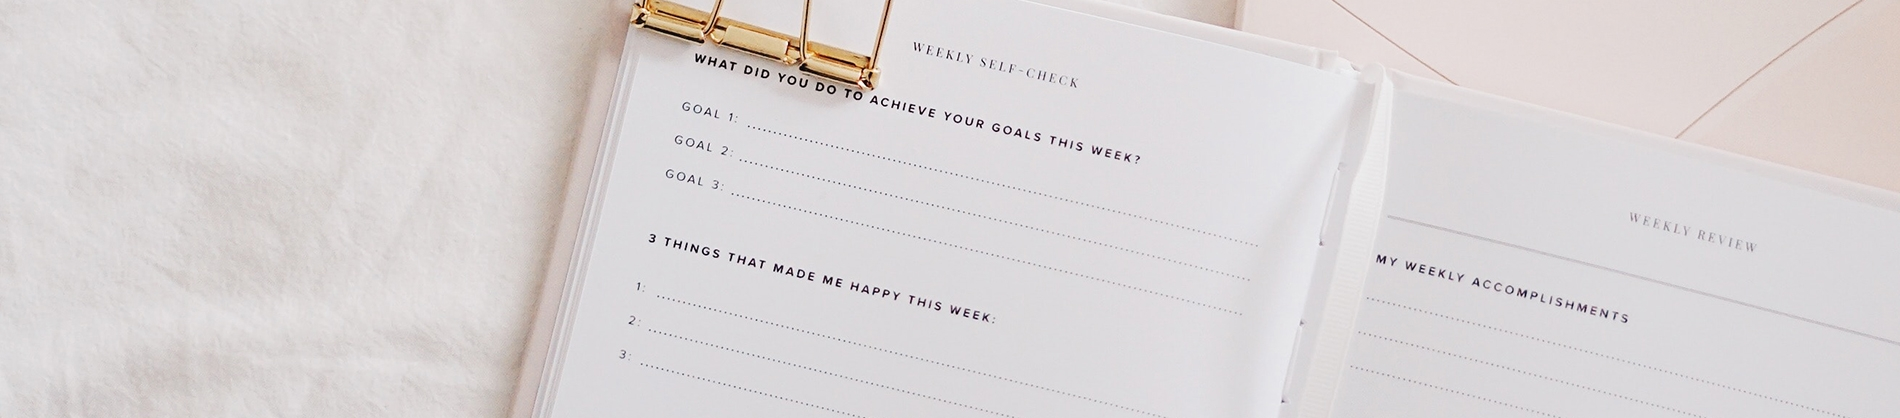 An open planner with goals listed